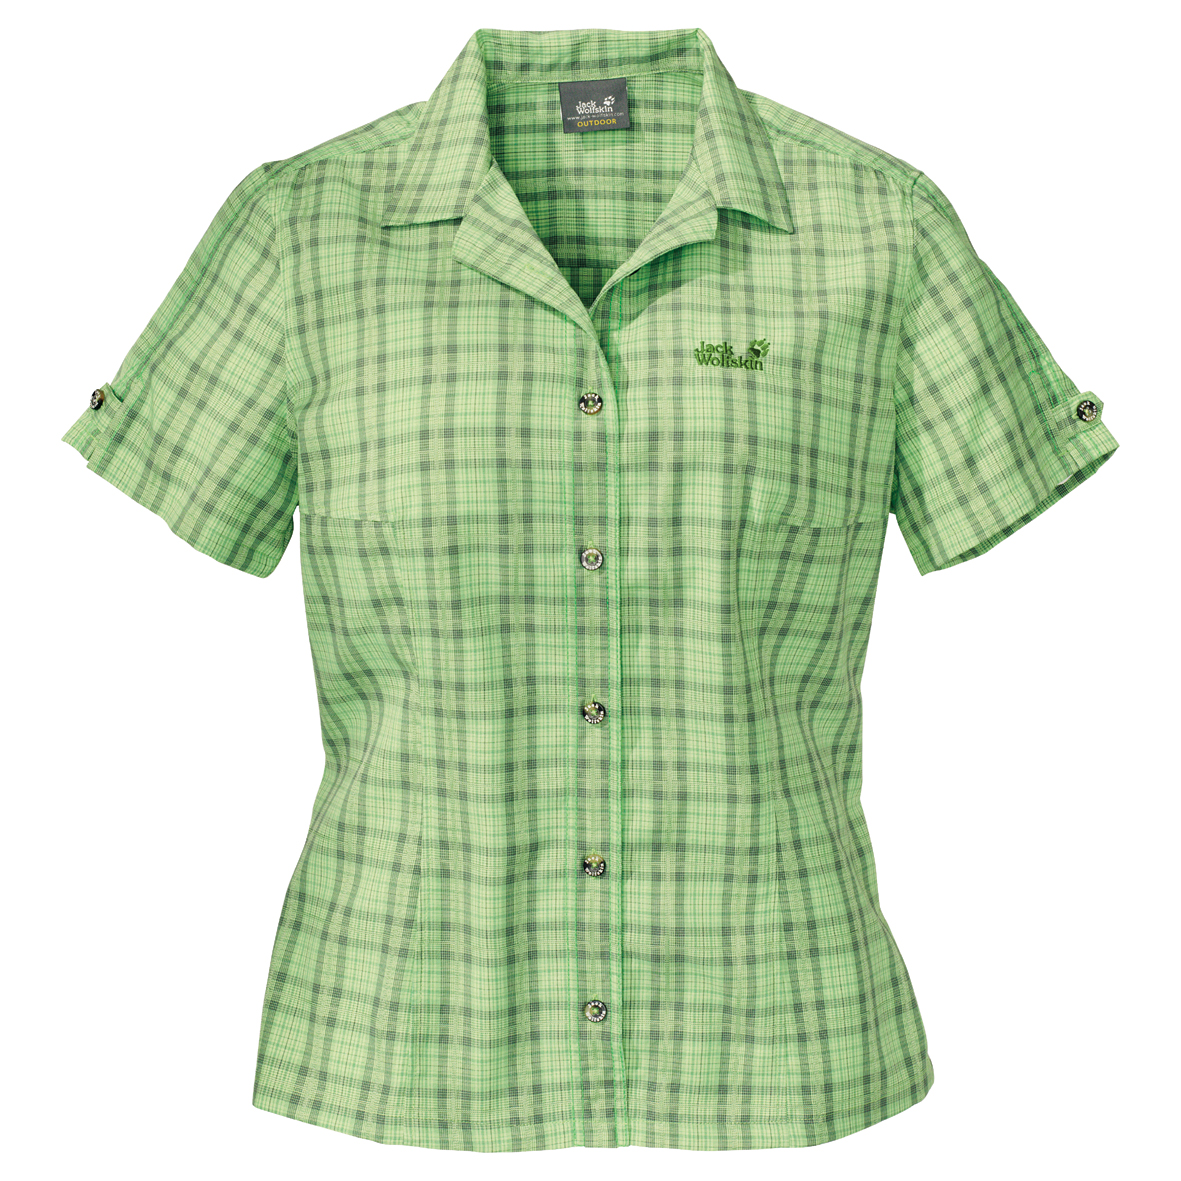 JACK WOLFSKIN WOMEN MOSQUITO SUN SHIRT SHARP GREEN CHECKS